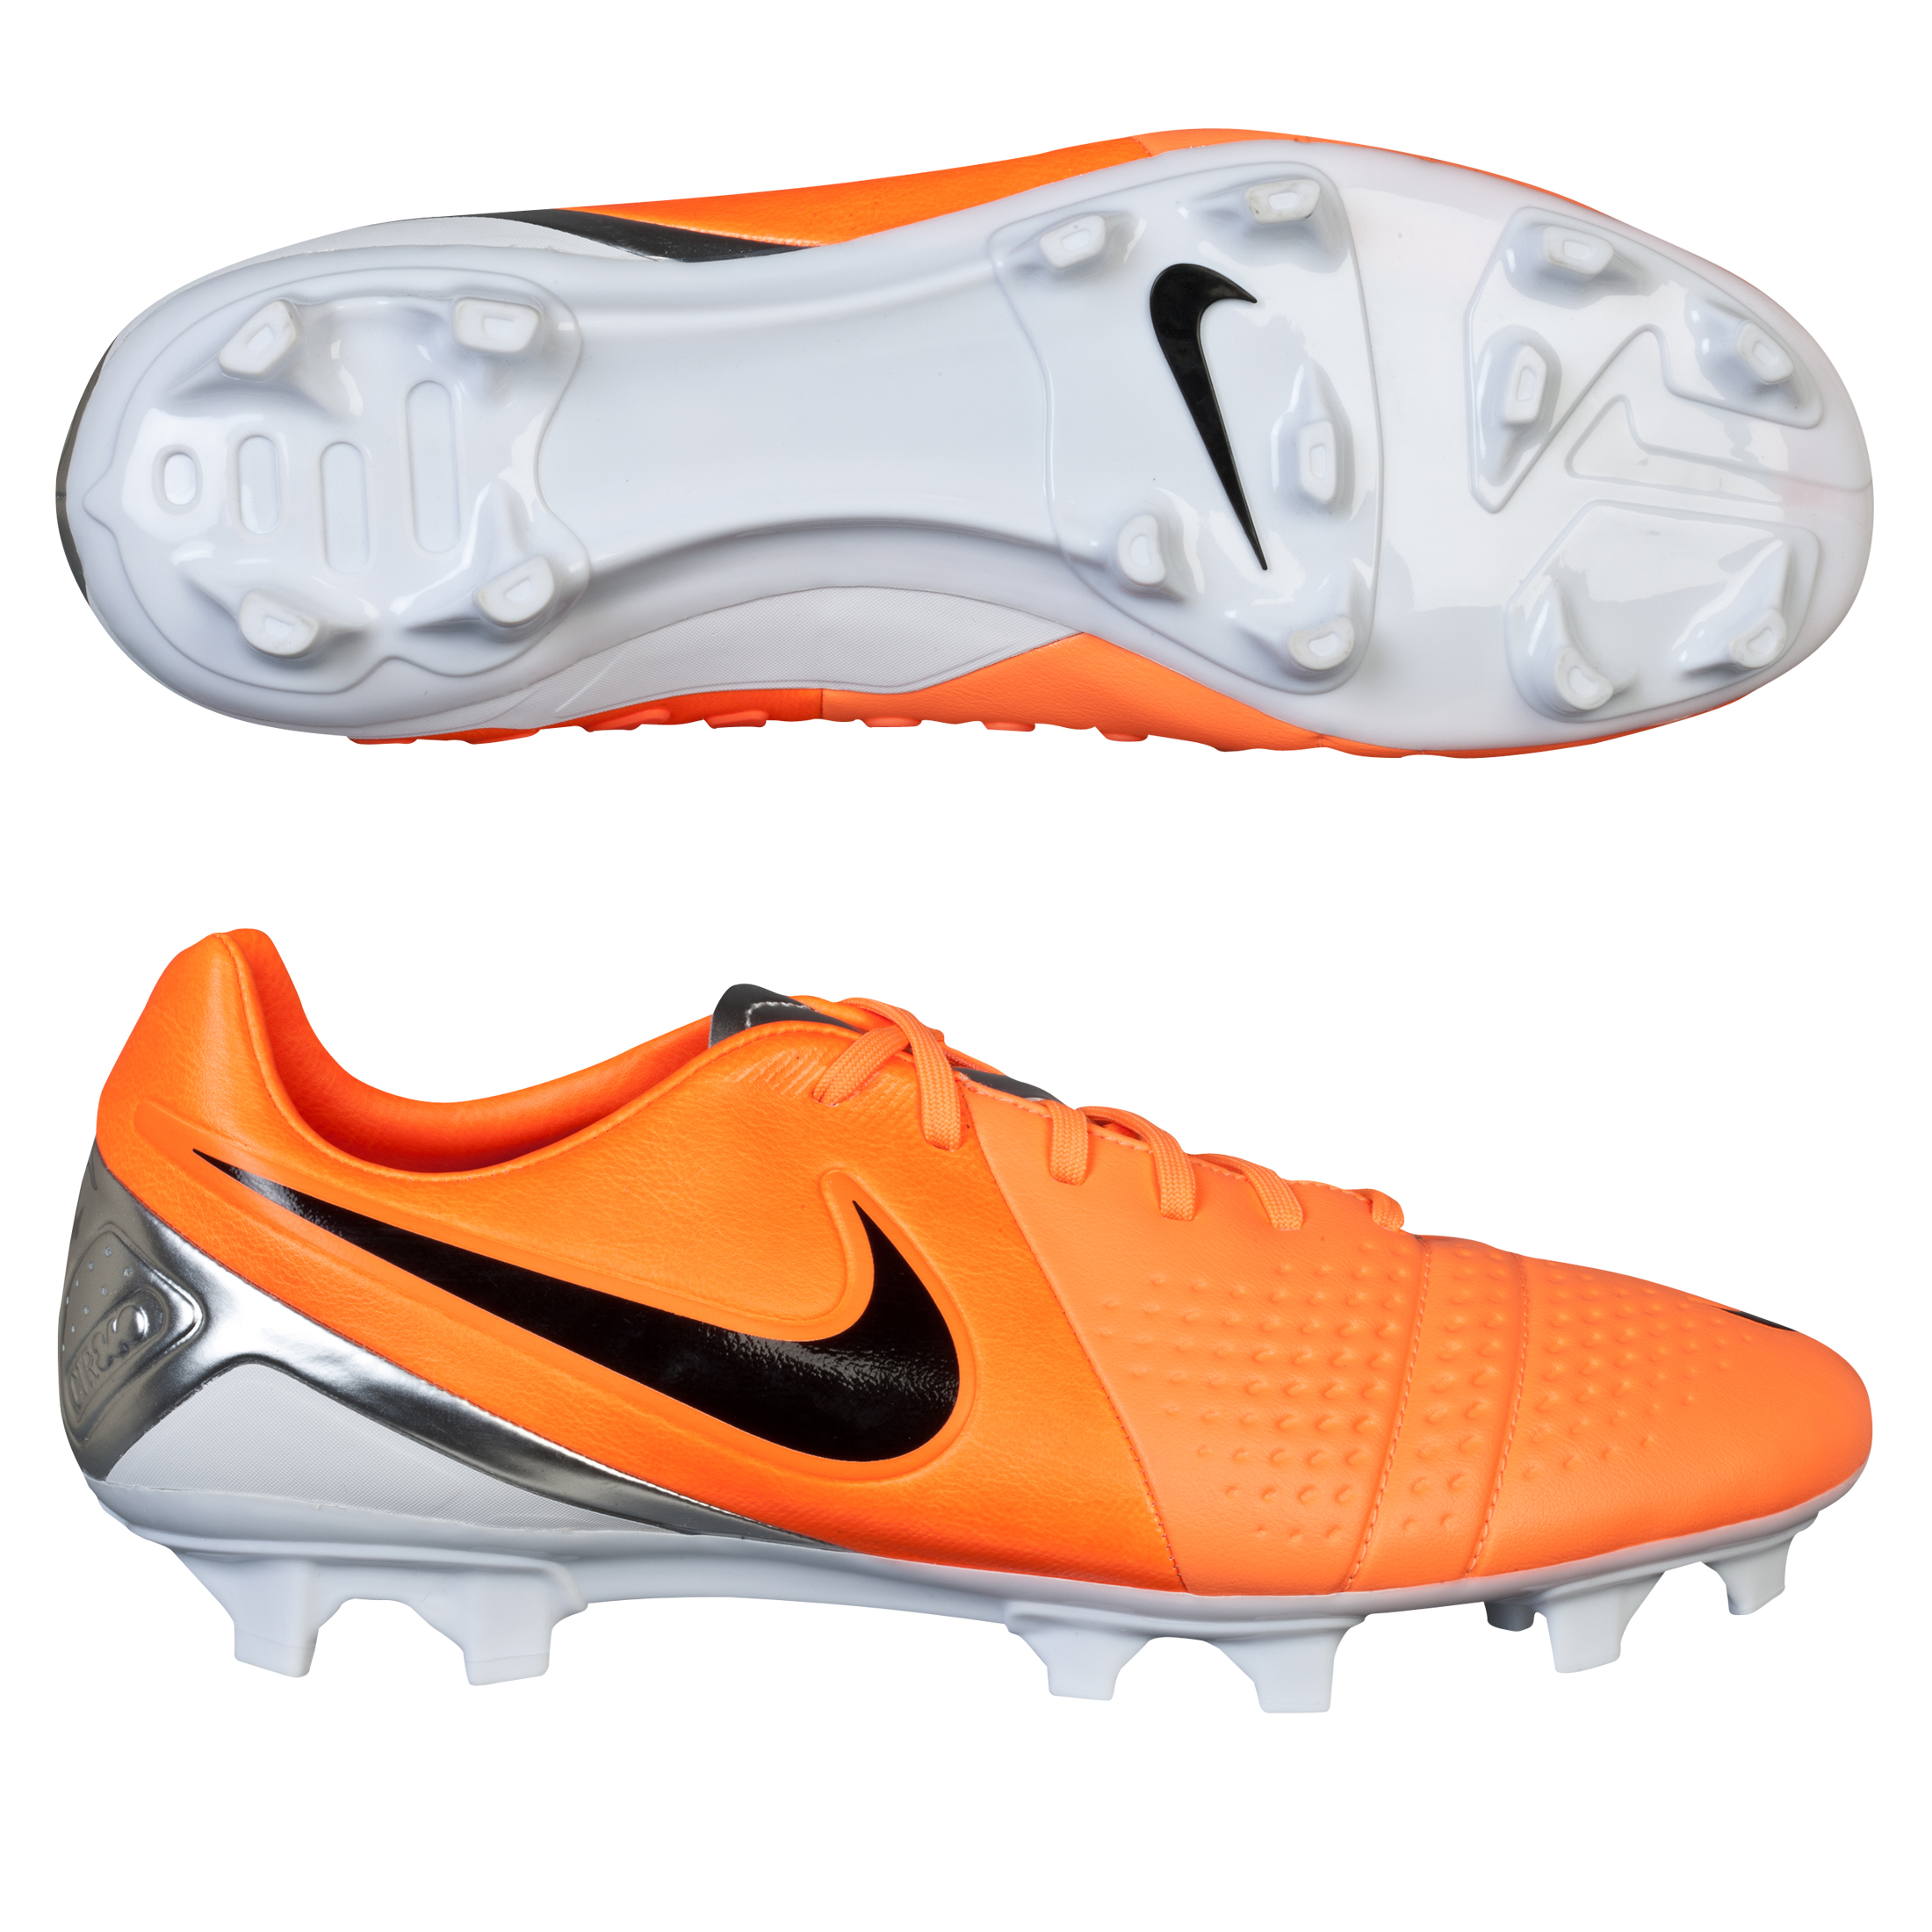 Nike CTR360 Trequartista III Firm Ground Football Boots Orange